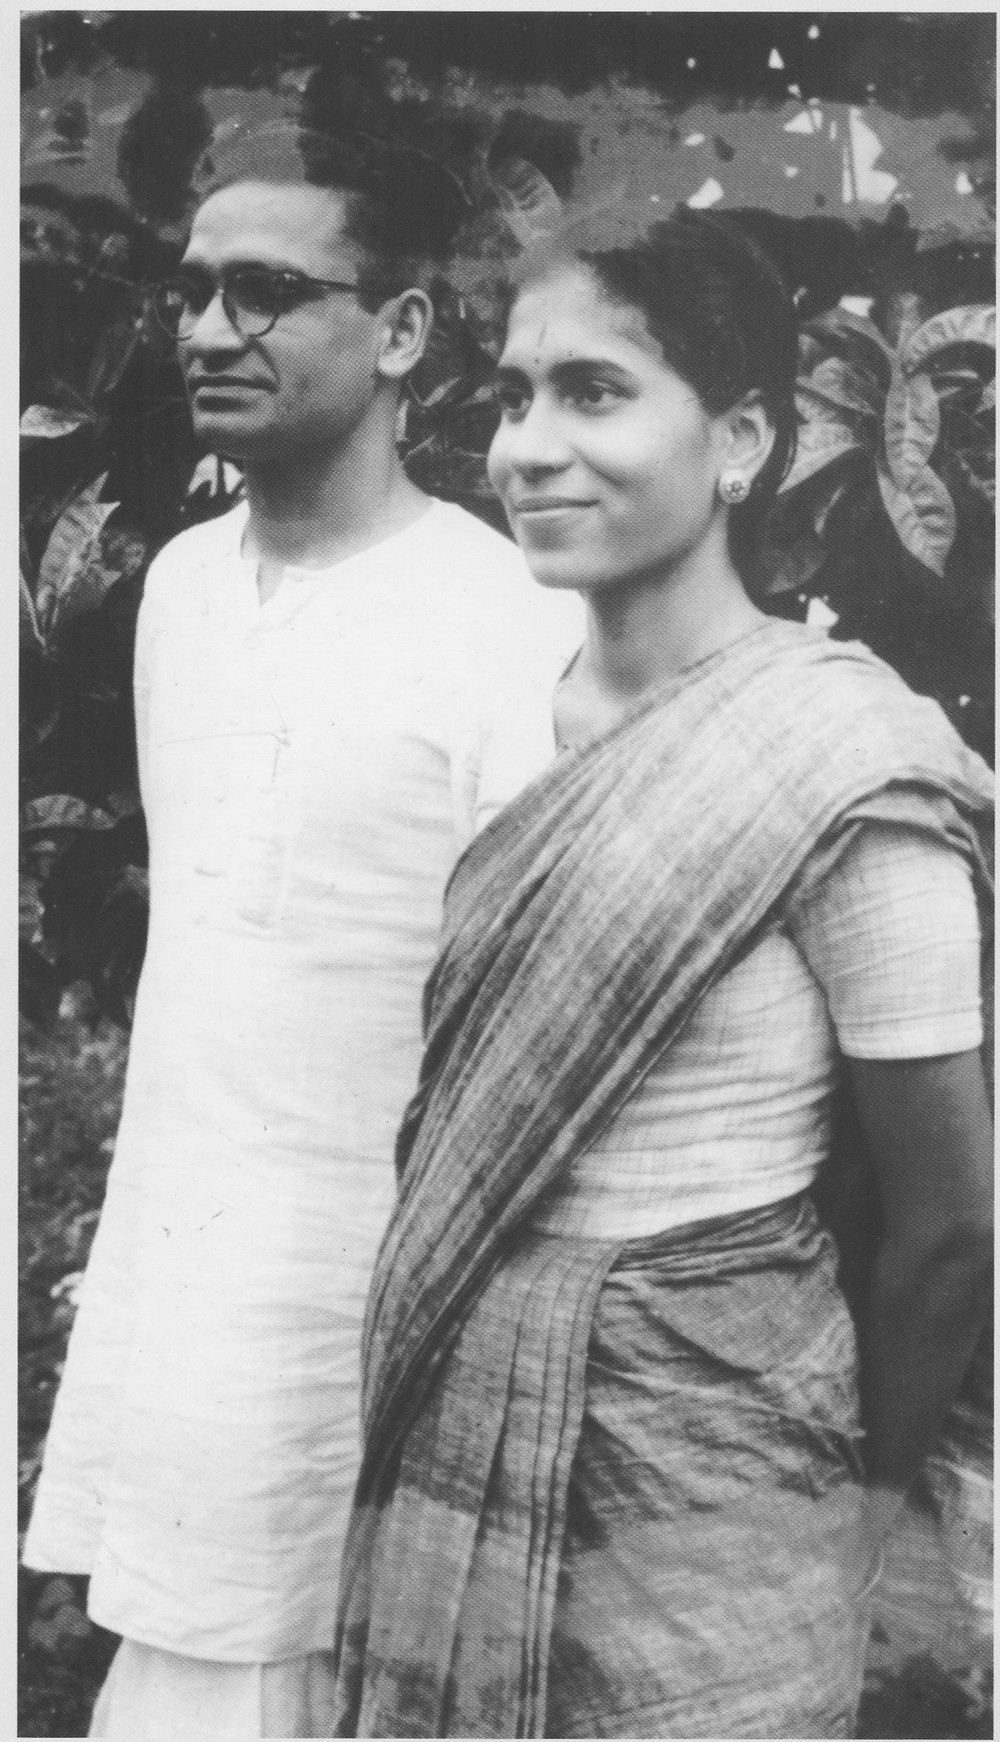 DR SHARMA AND HIS WIFE VASANTI WHEN THEY 1ST MOVED INTO DATTAPUR